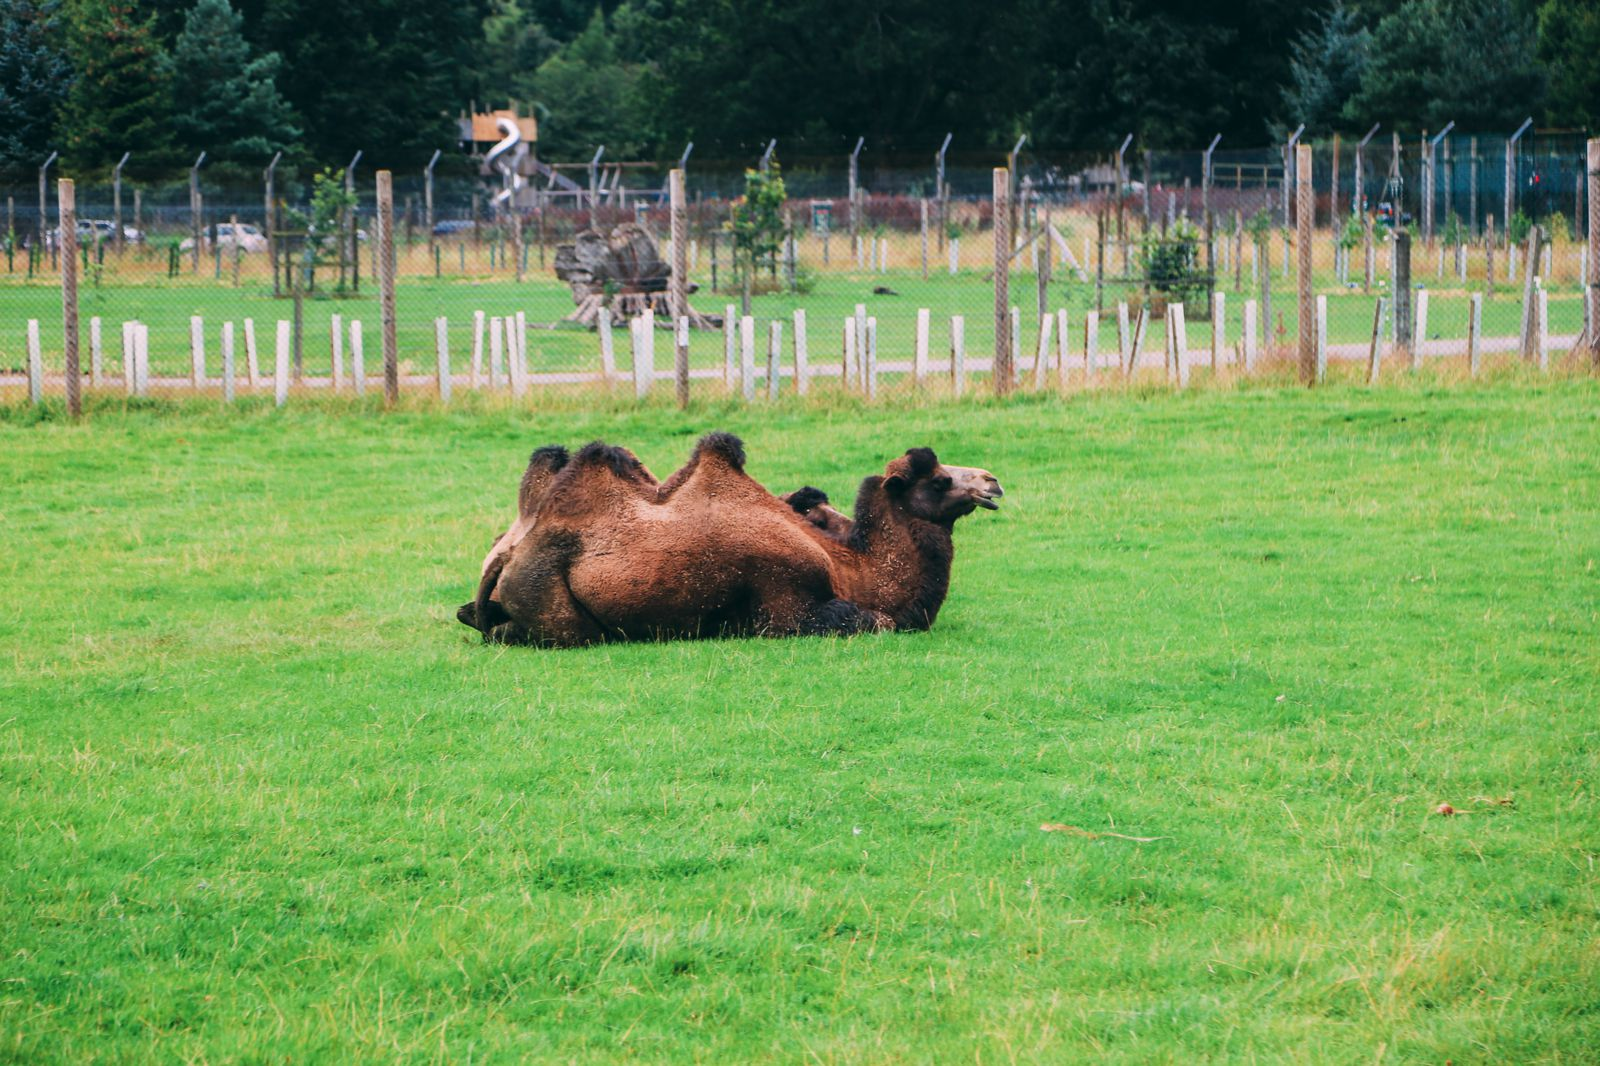 Safari In Scotland - The Photo Diary at Blair Drummond Safari and Adventure Park (5)